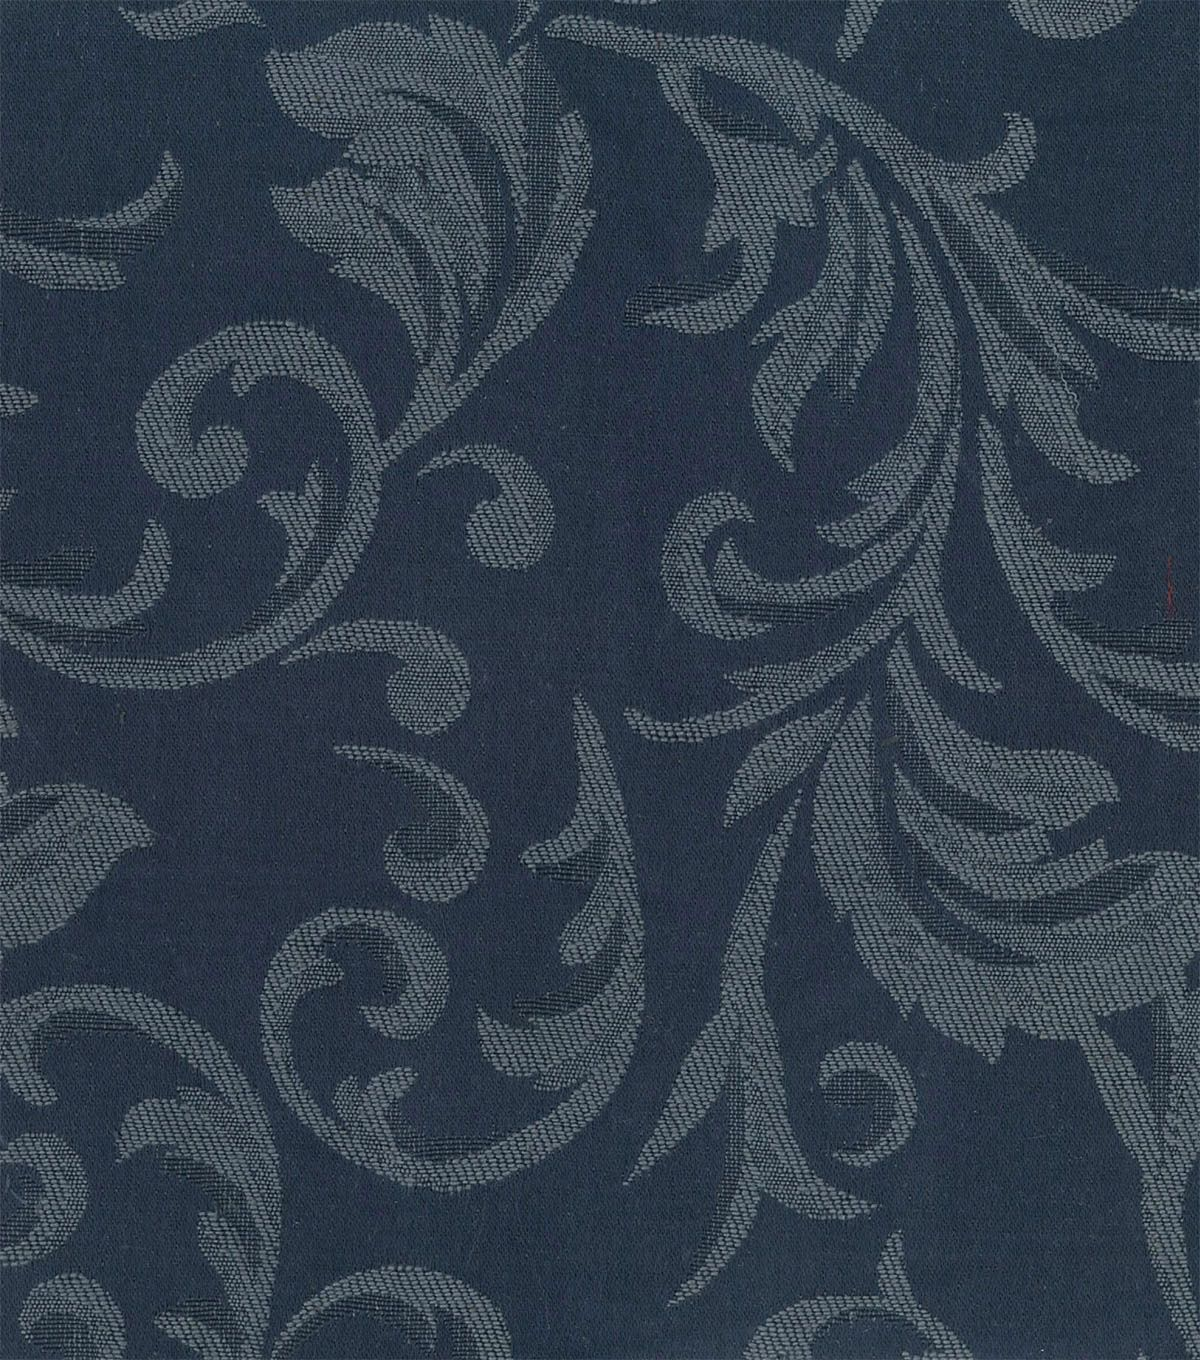 Signature Series Lightweight Decor Jacquard Fabric 54 Navy Fabric Decor Fabric Printing On Fabric